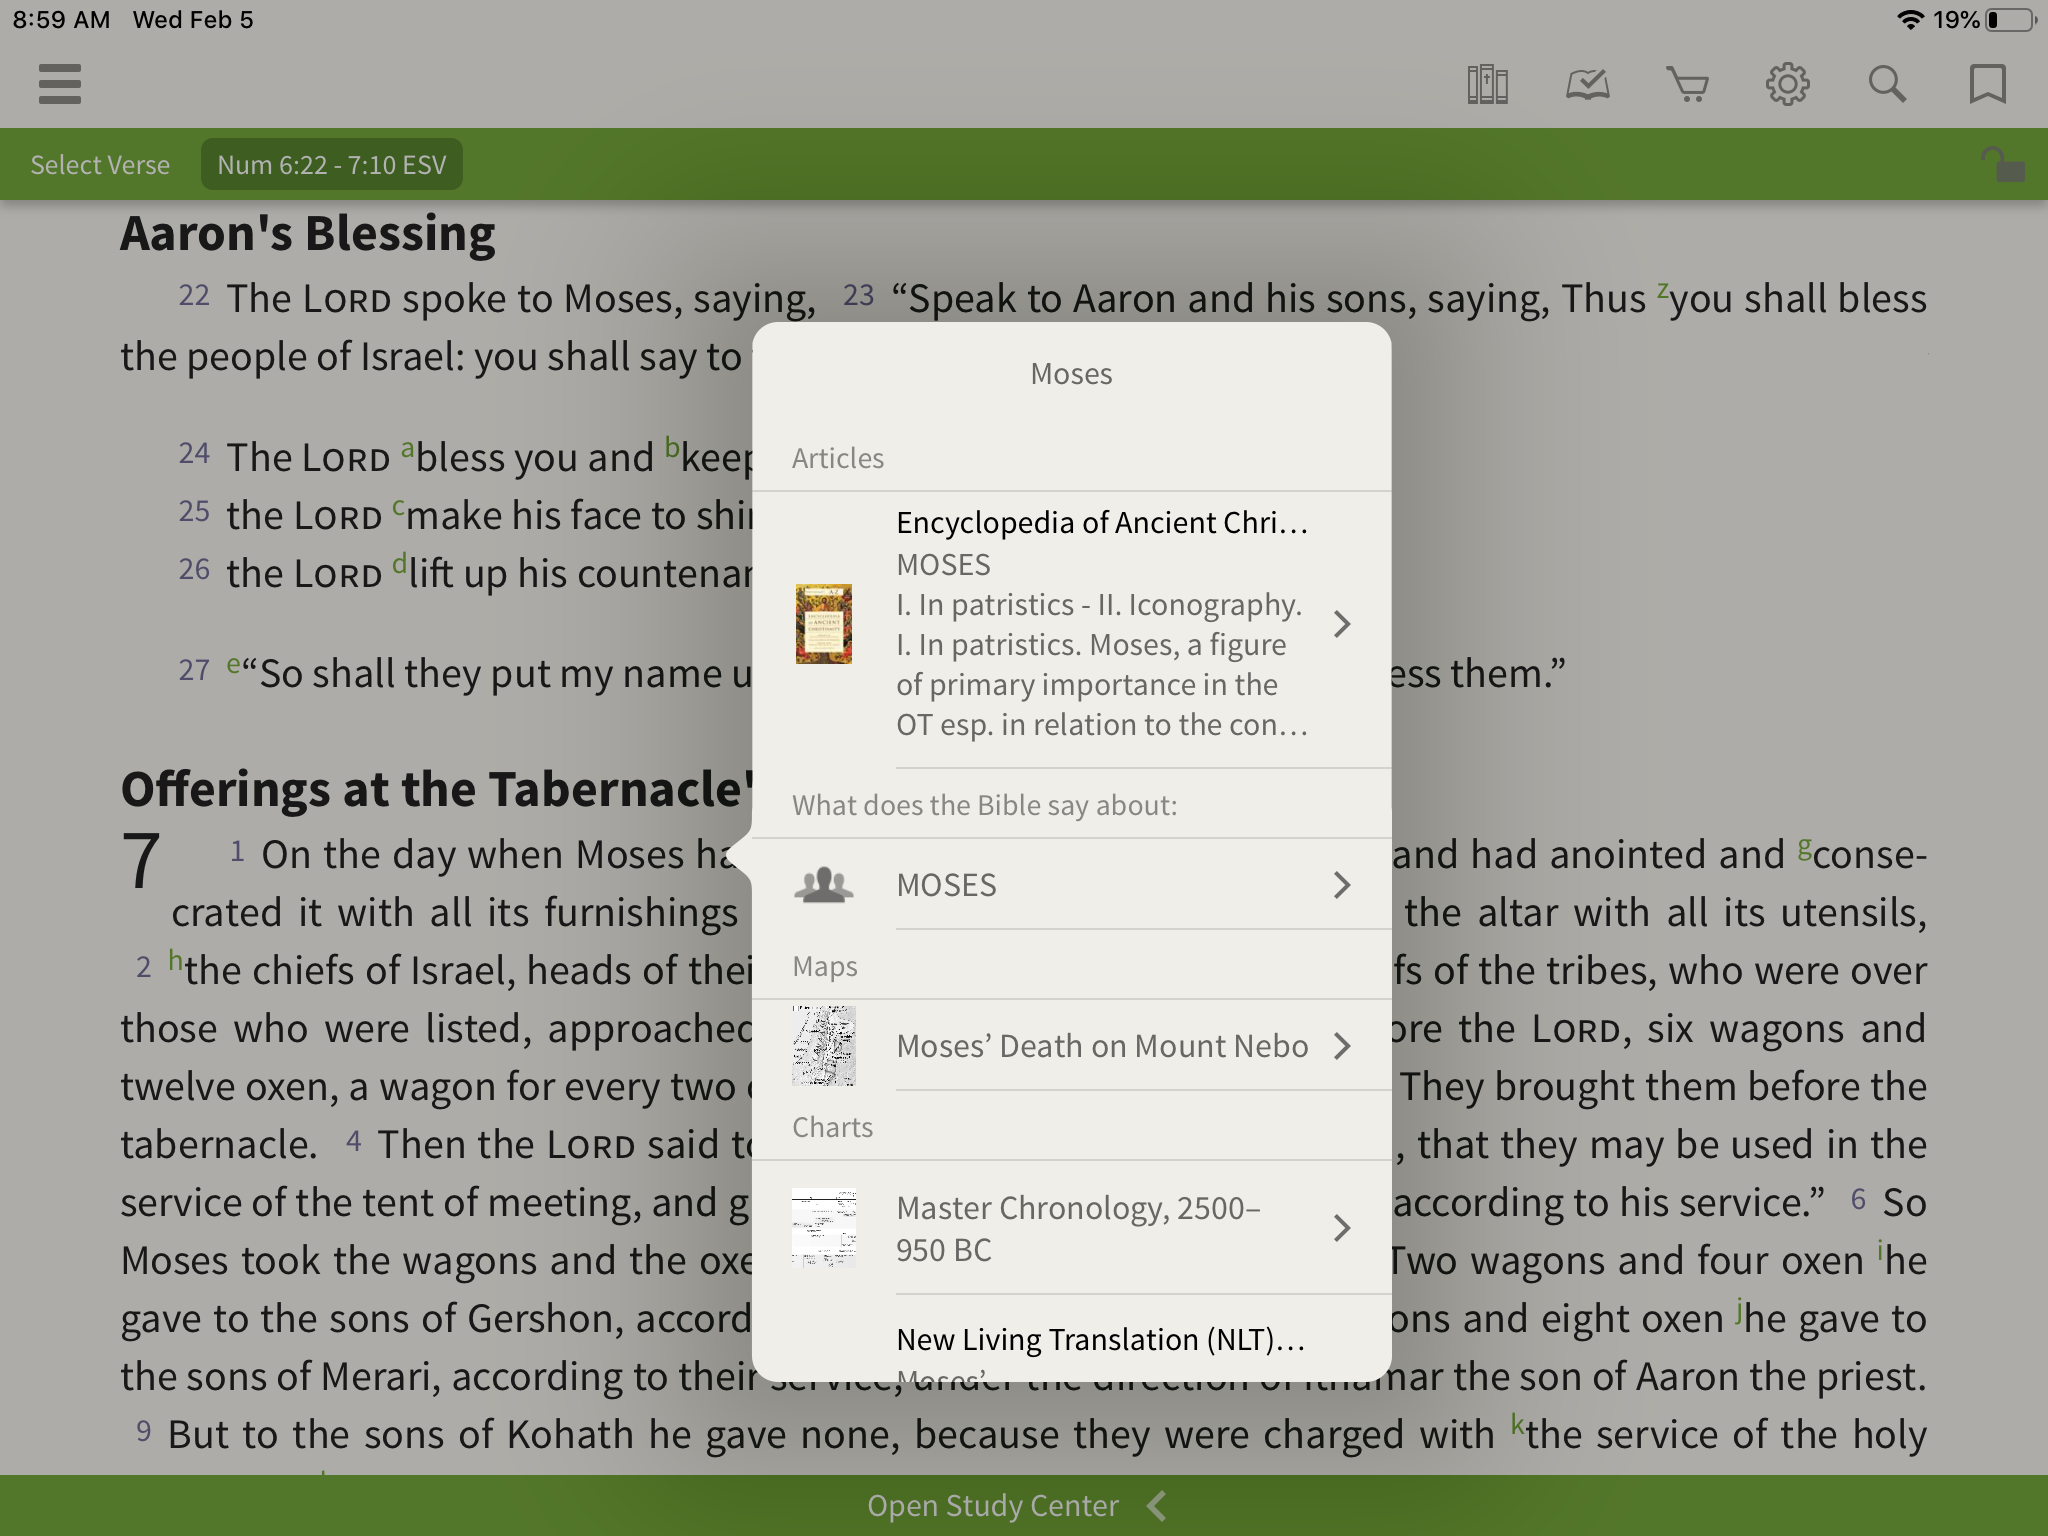 Olive Tree Bible App look up for articles, showing Encyclopedia of Ancient Christianity